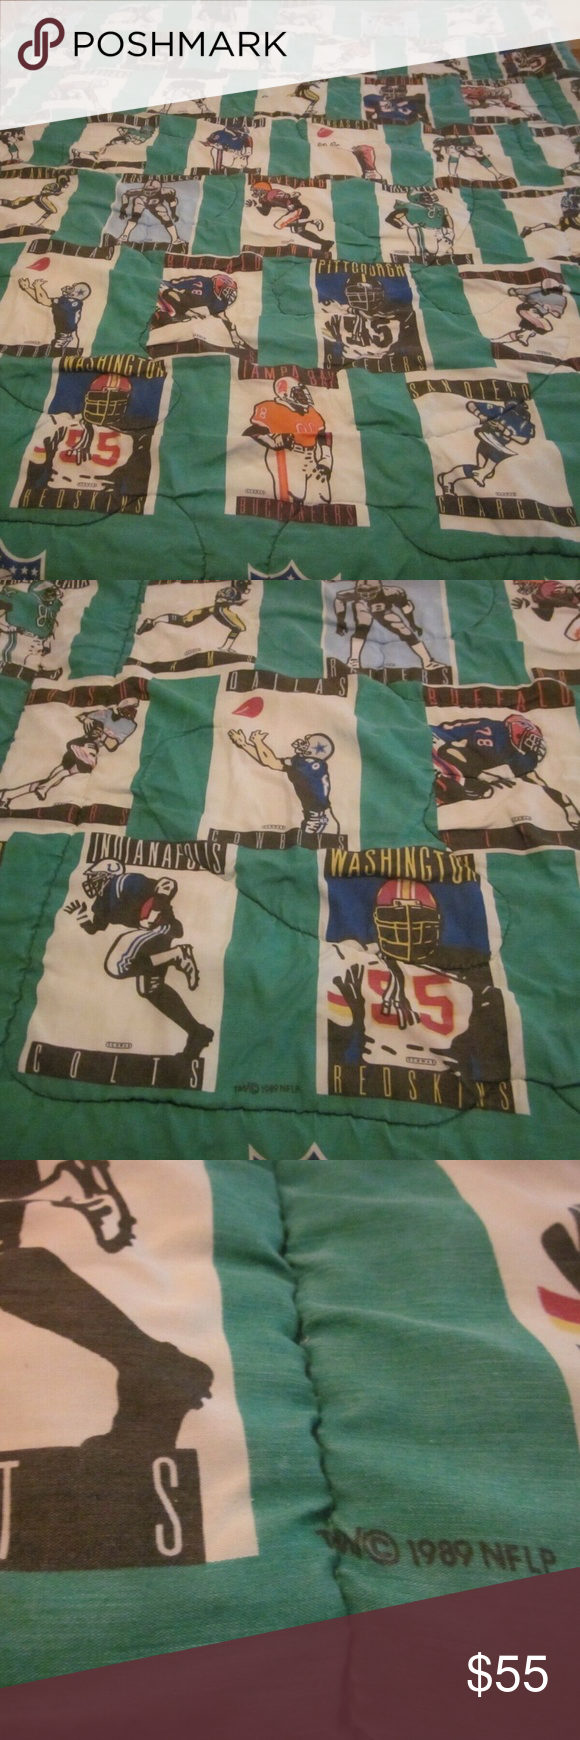 NFL Football Comforter 49ers Chiefs Packers 1989 in 2020